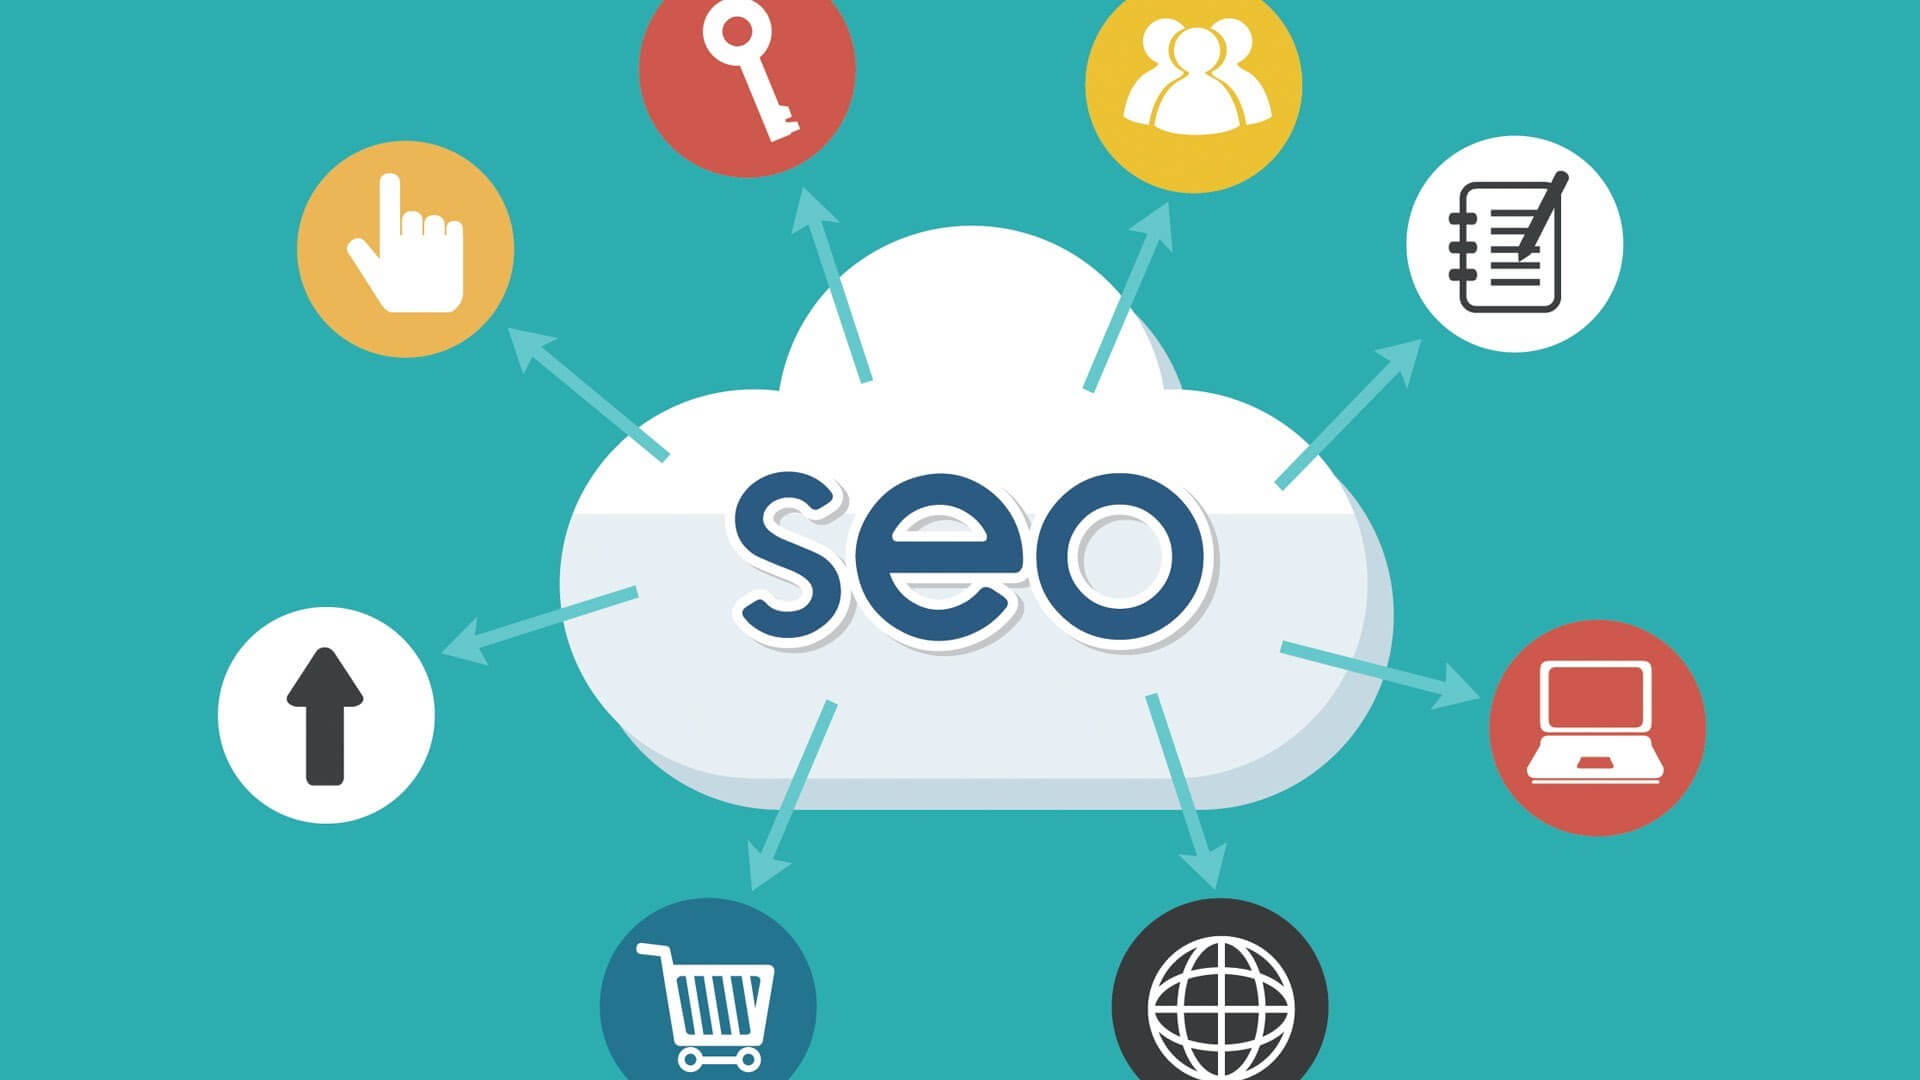 ¿QUE ES SEO Y PORQUE ES IMPORTANTE EN INBOUND MARKETING?